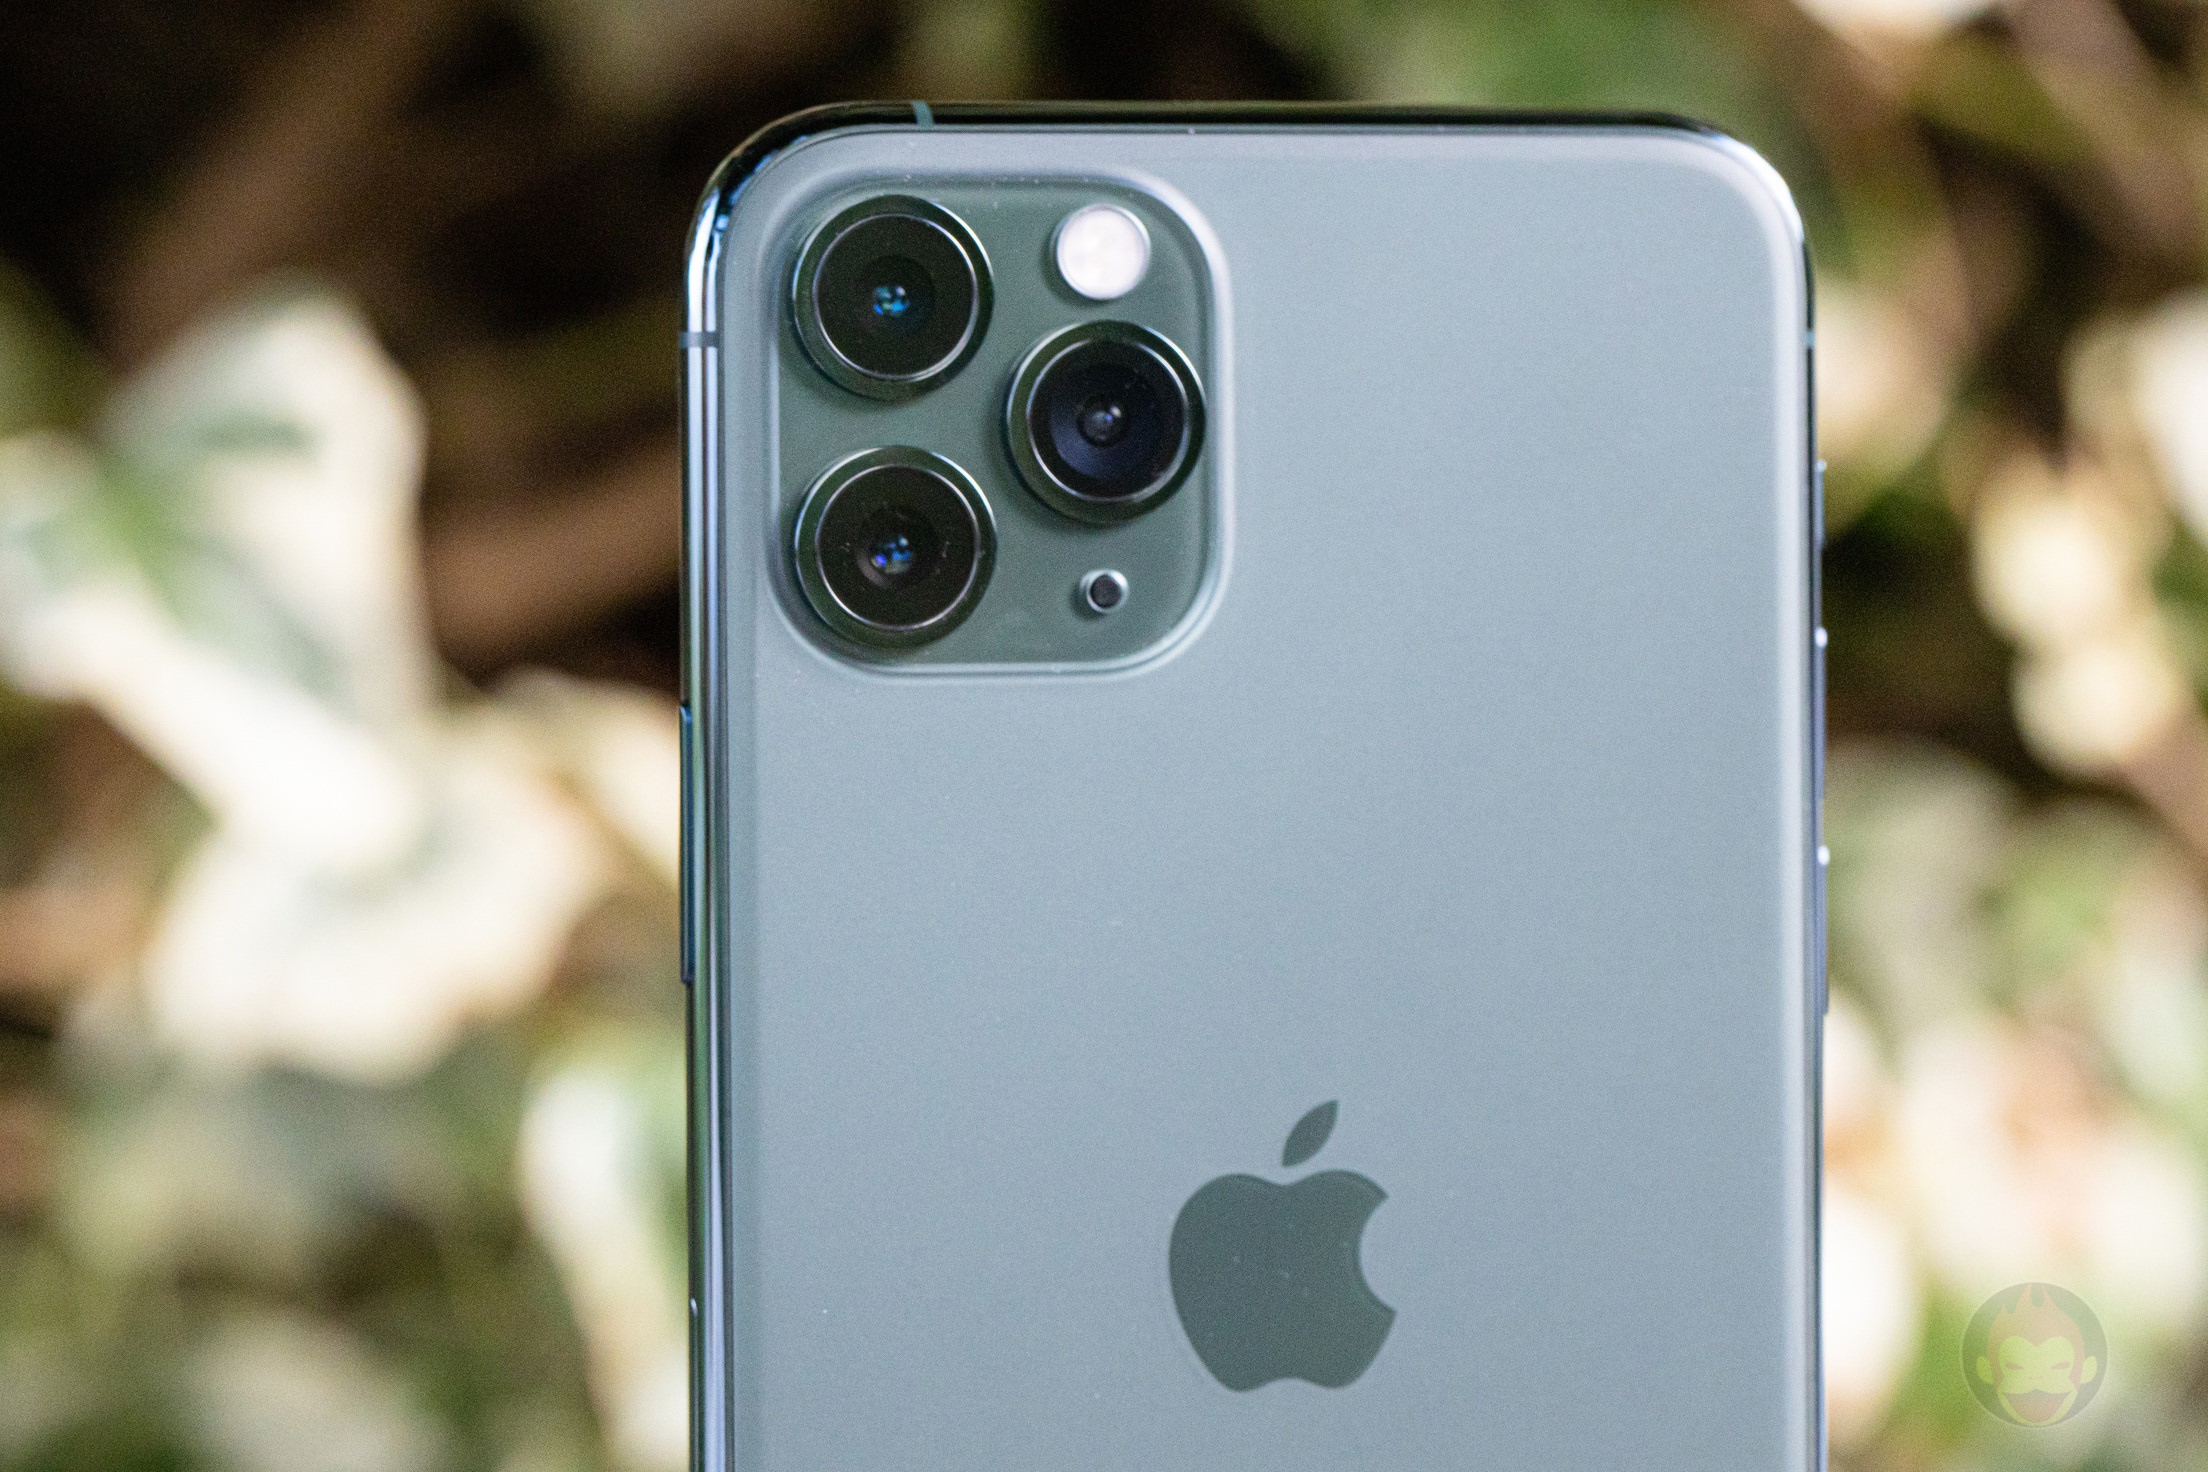 iPhone-11-Pro-Ultra-Wide-Camera-Lens-Review-01